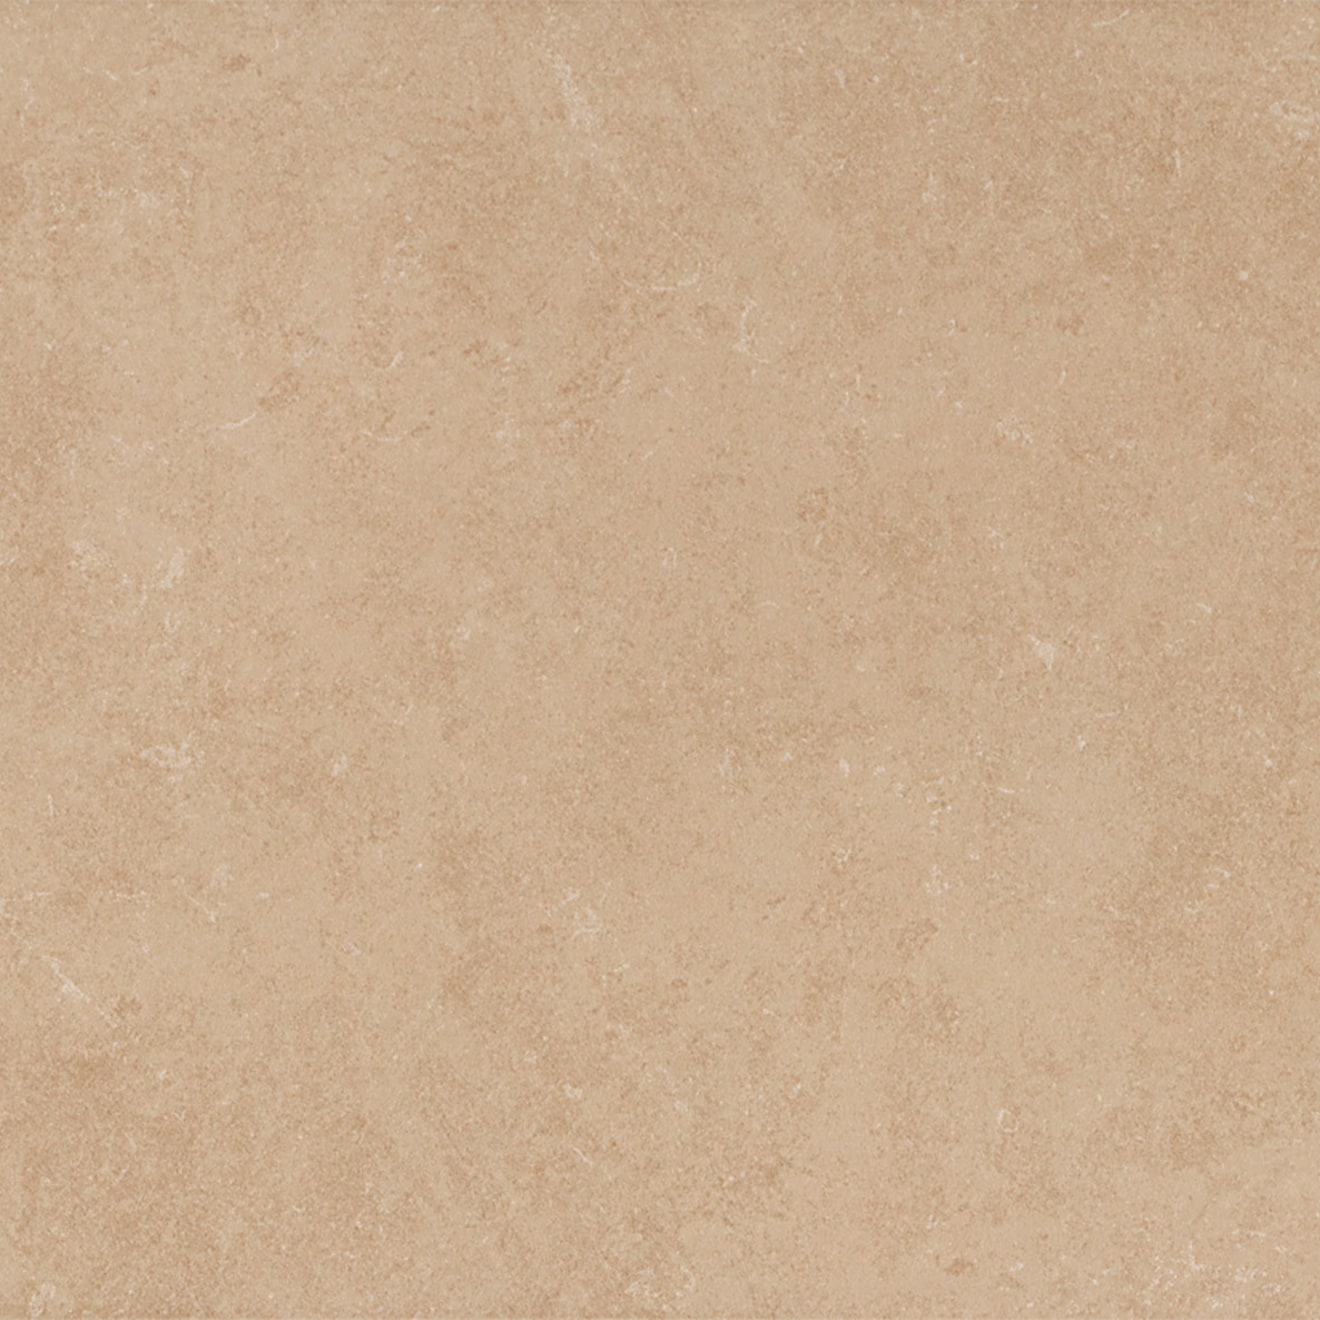 "Ararat 12""x24"" Porcelain Floor & Wall Tile in Beige"